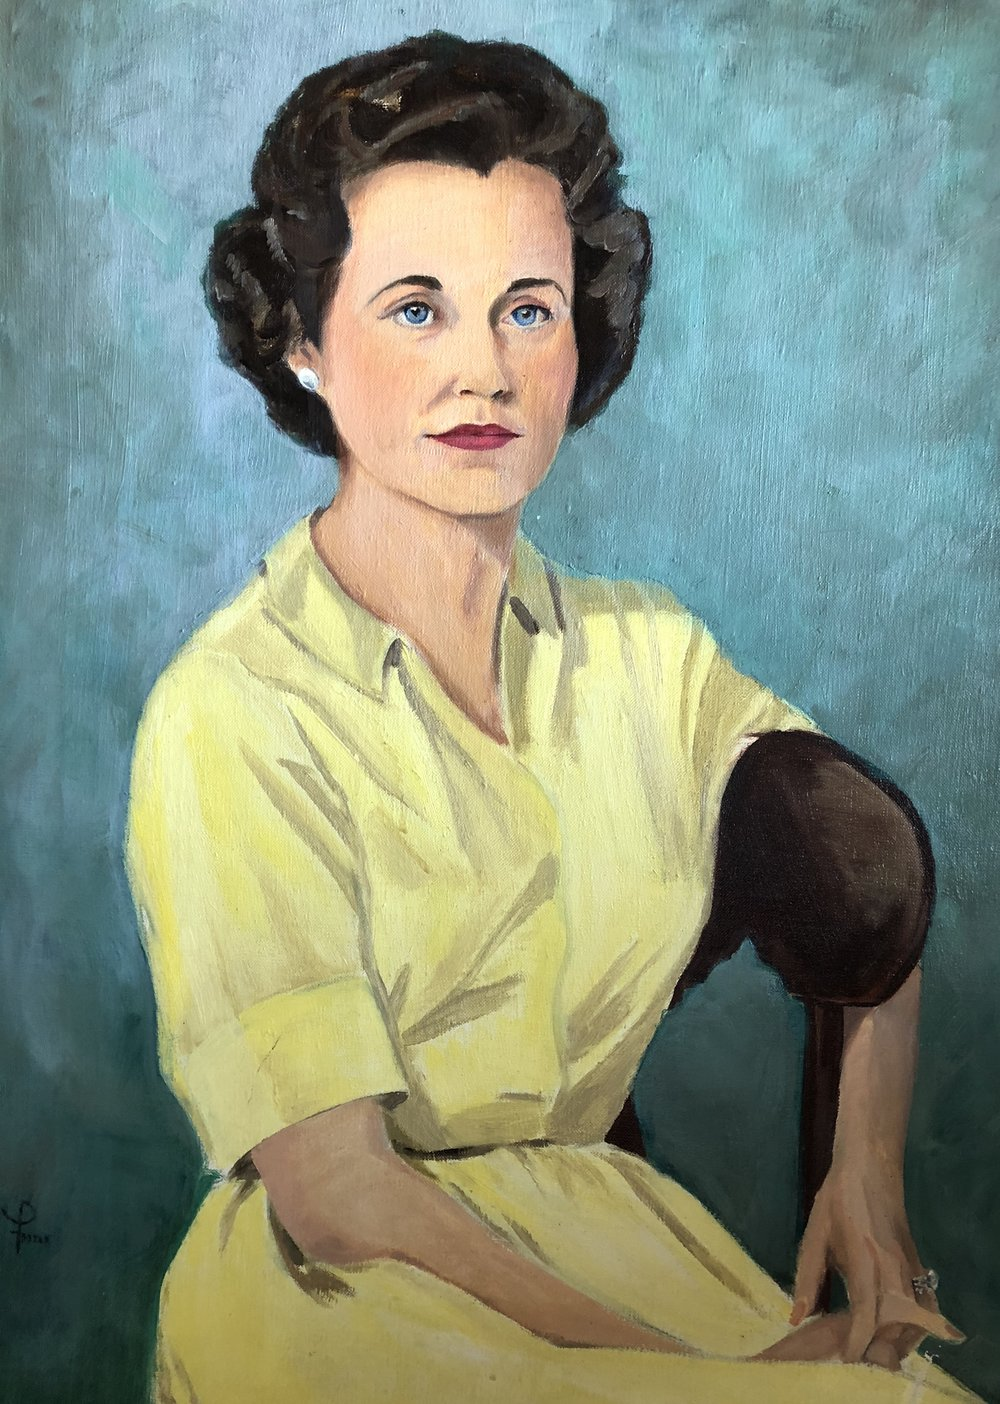 Nana, my paternal grandmother, painted by my maternal grandmother.